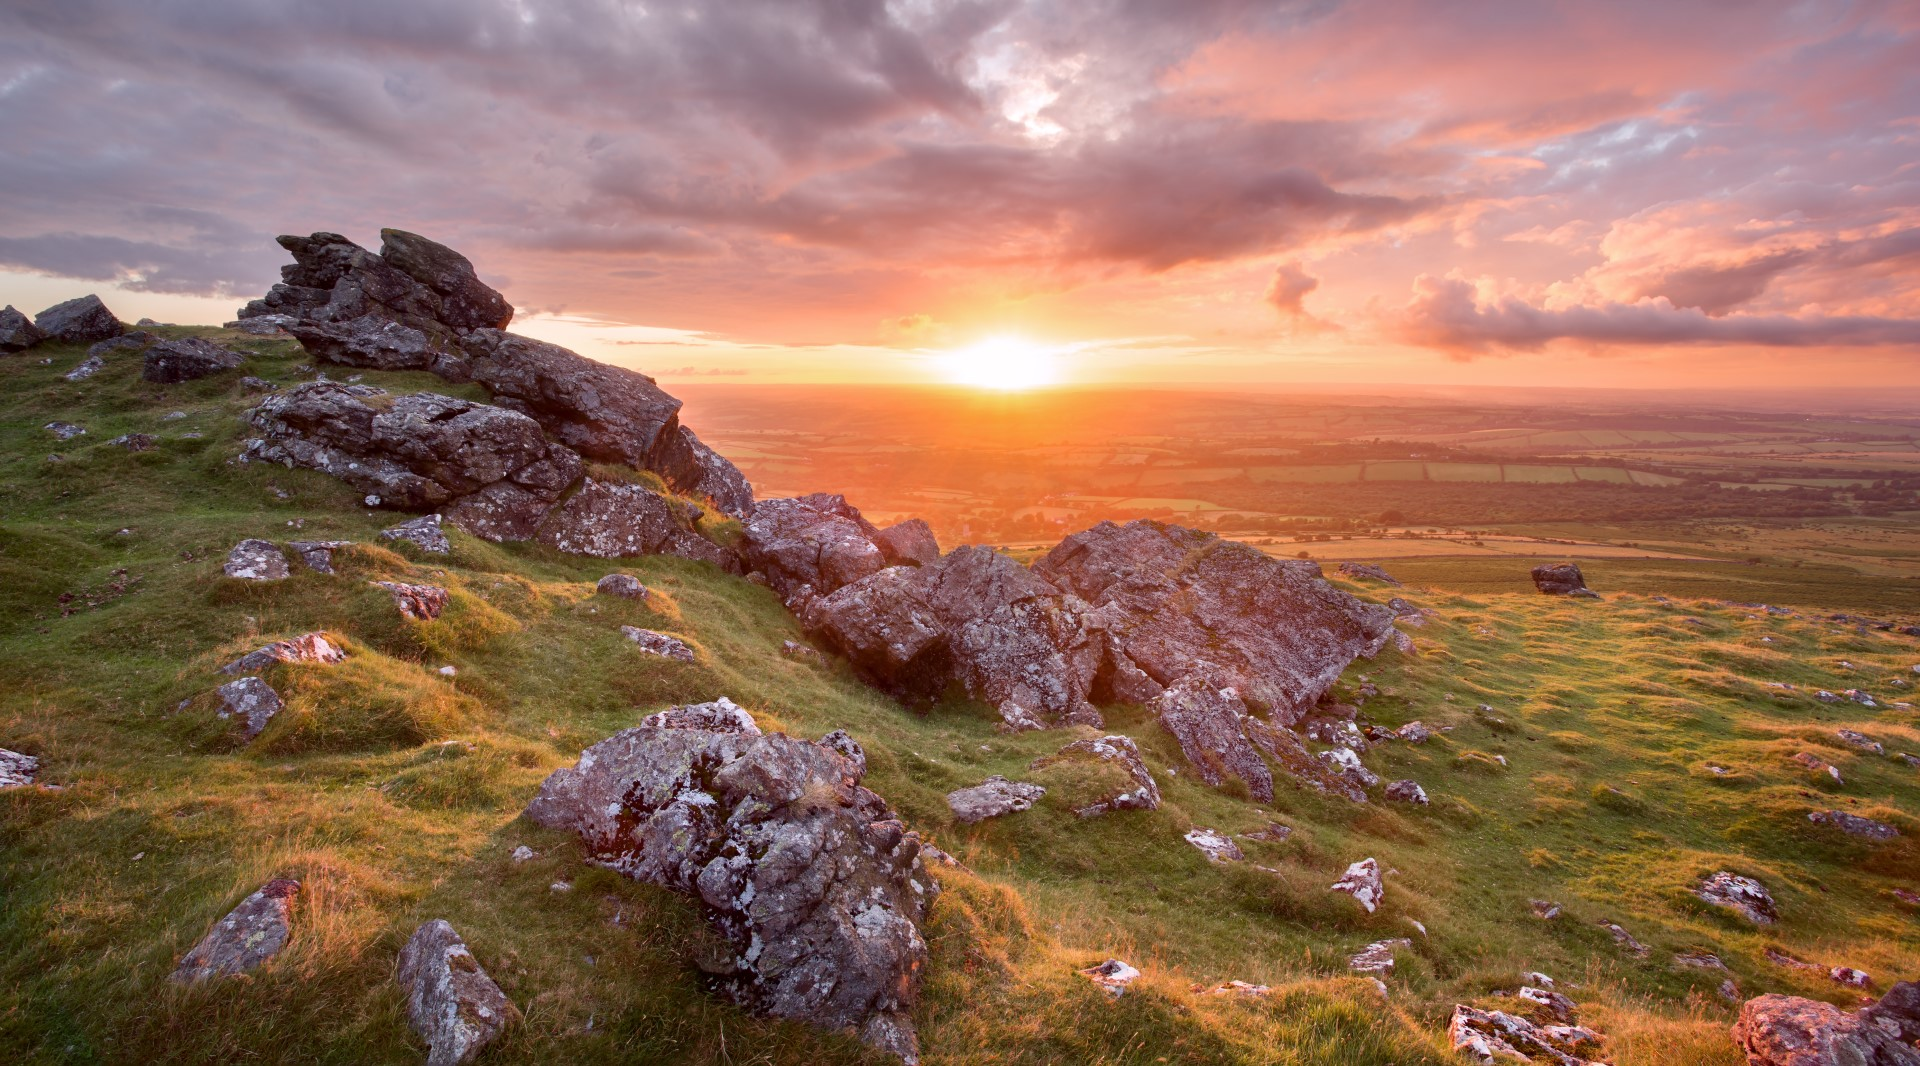 A holiday cottage with a view across Dartmoor